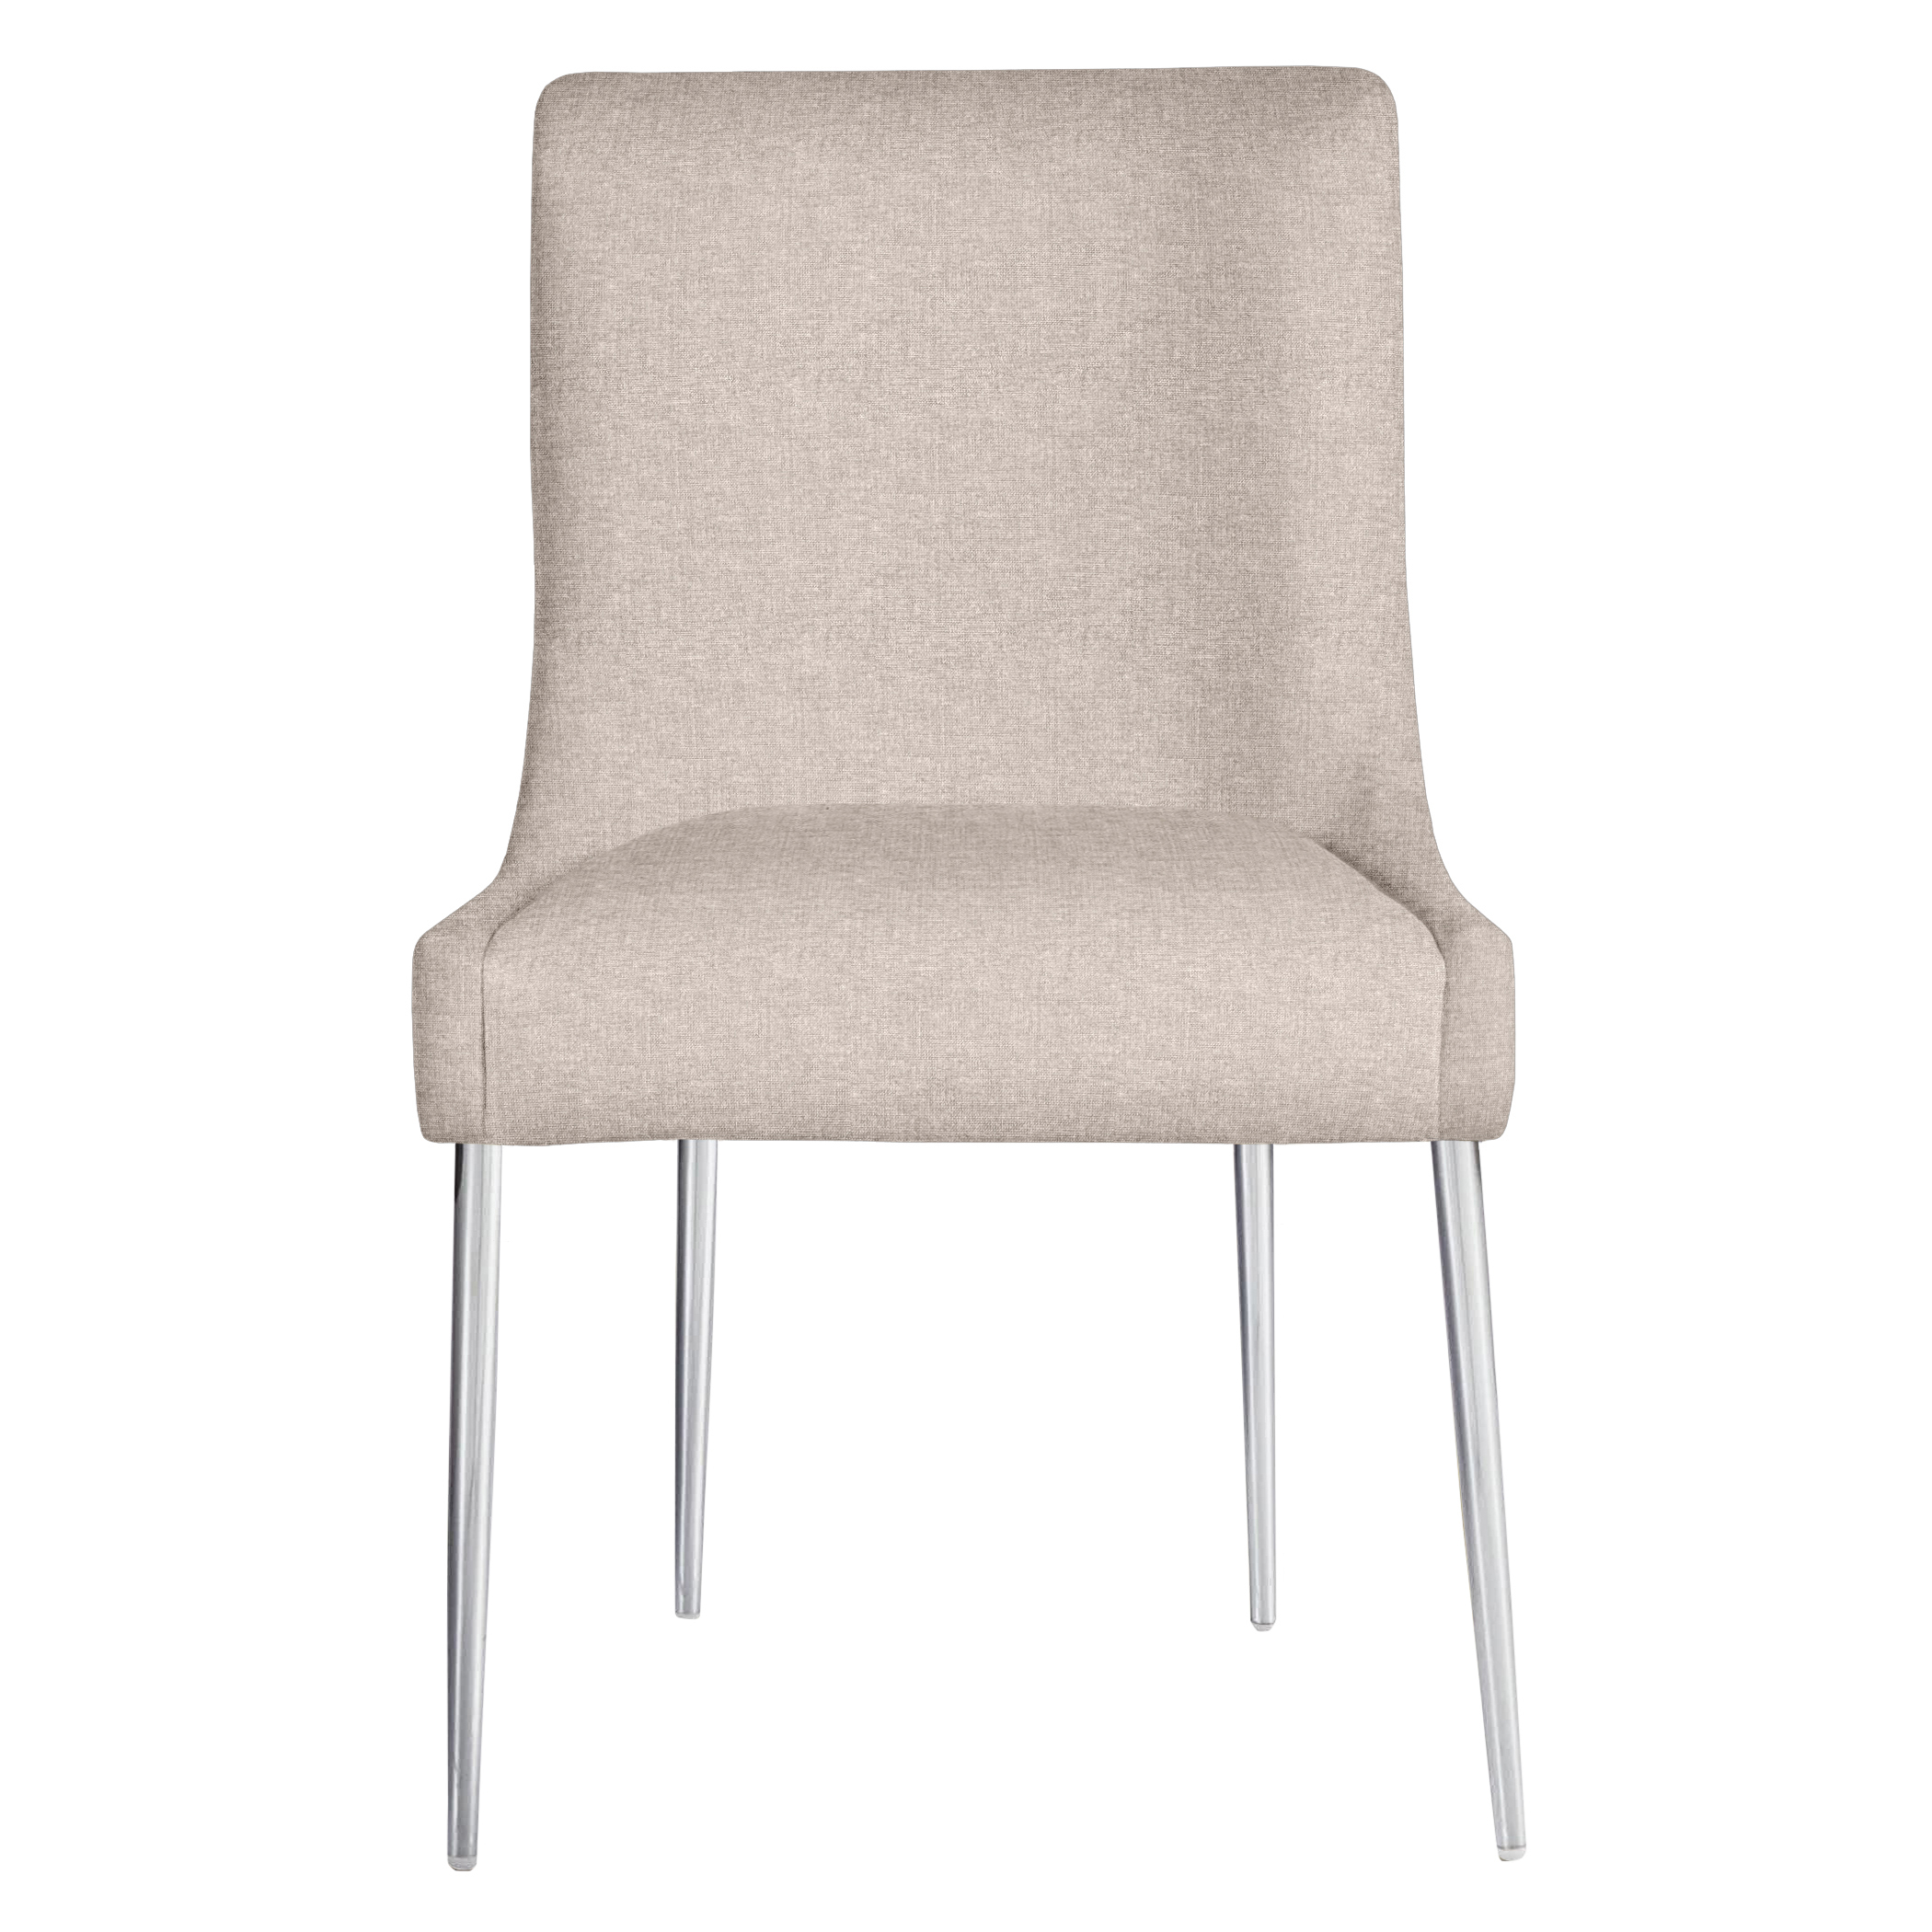 Elinor Dining Chair - Bright Nickel